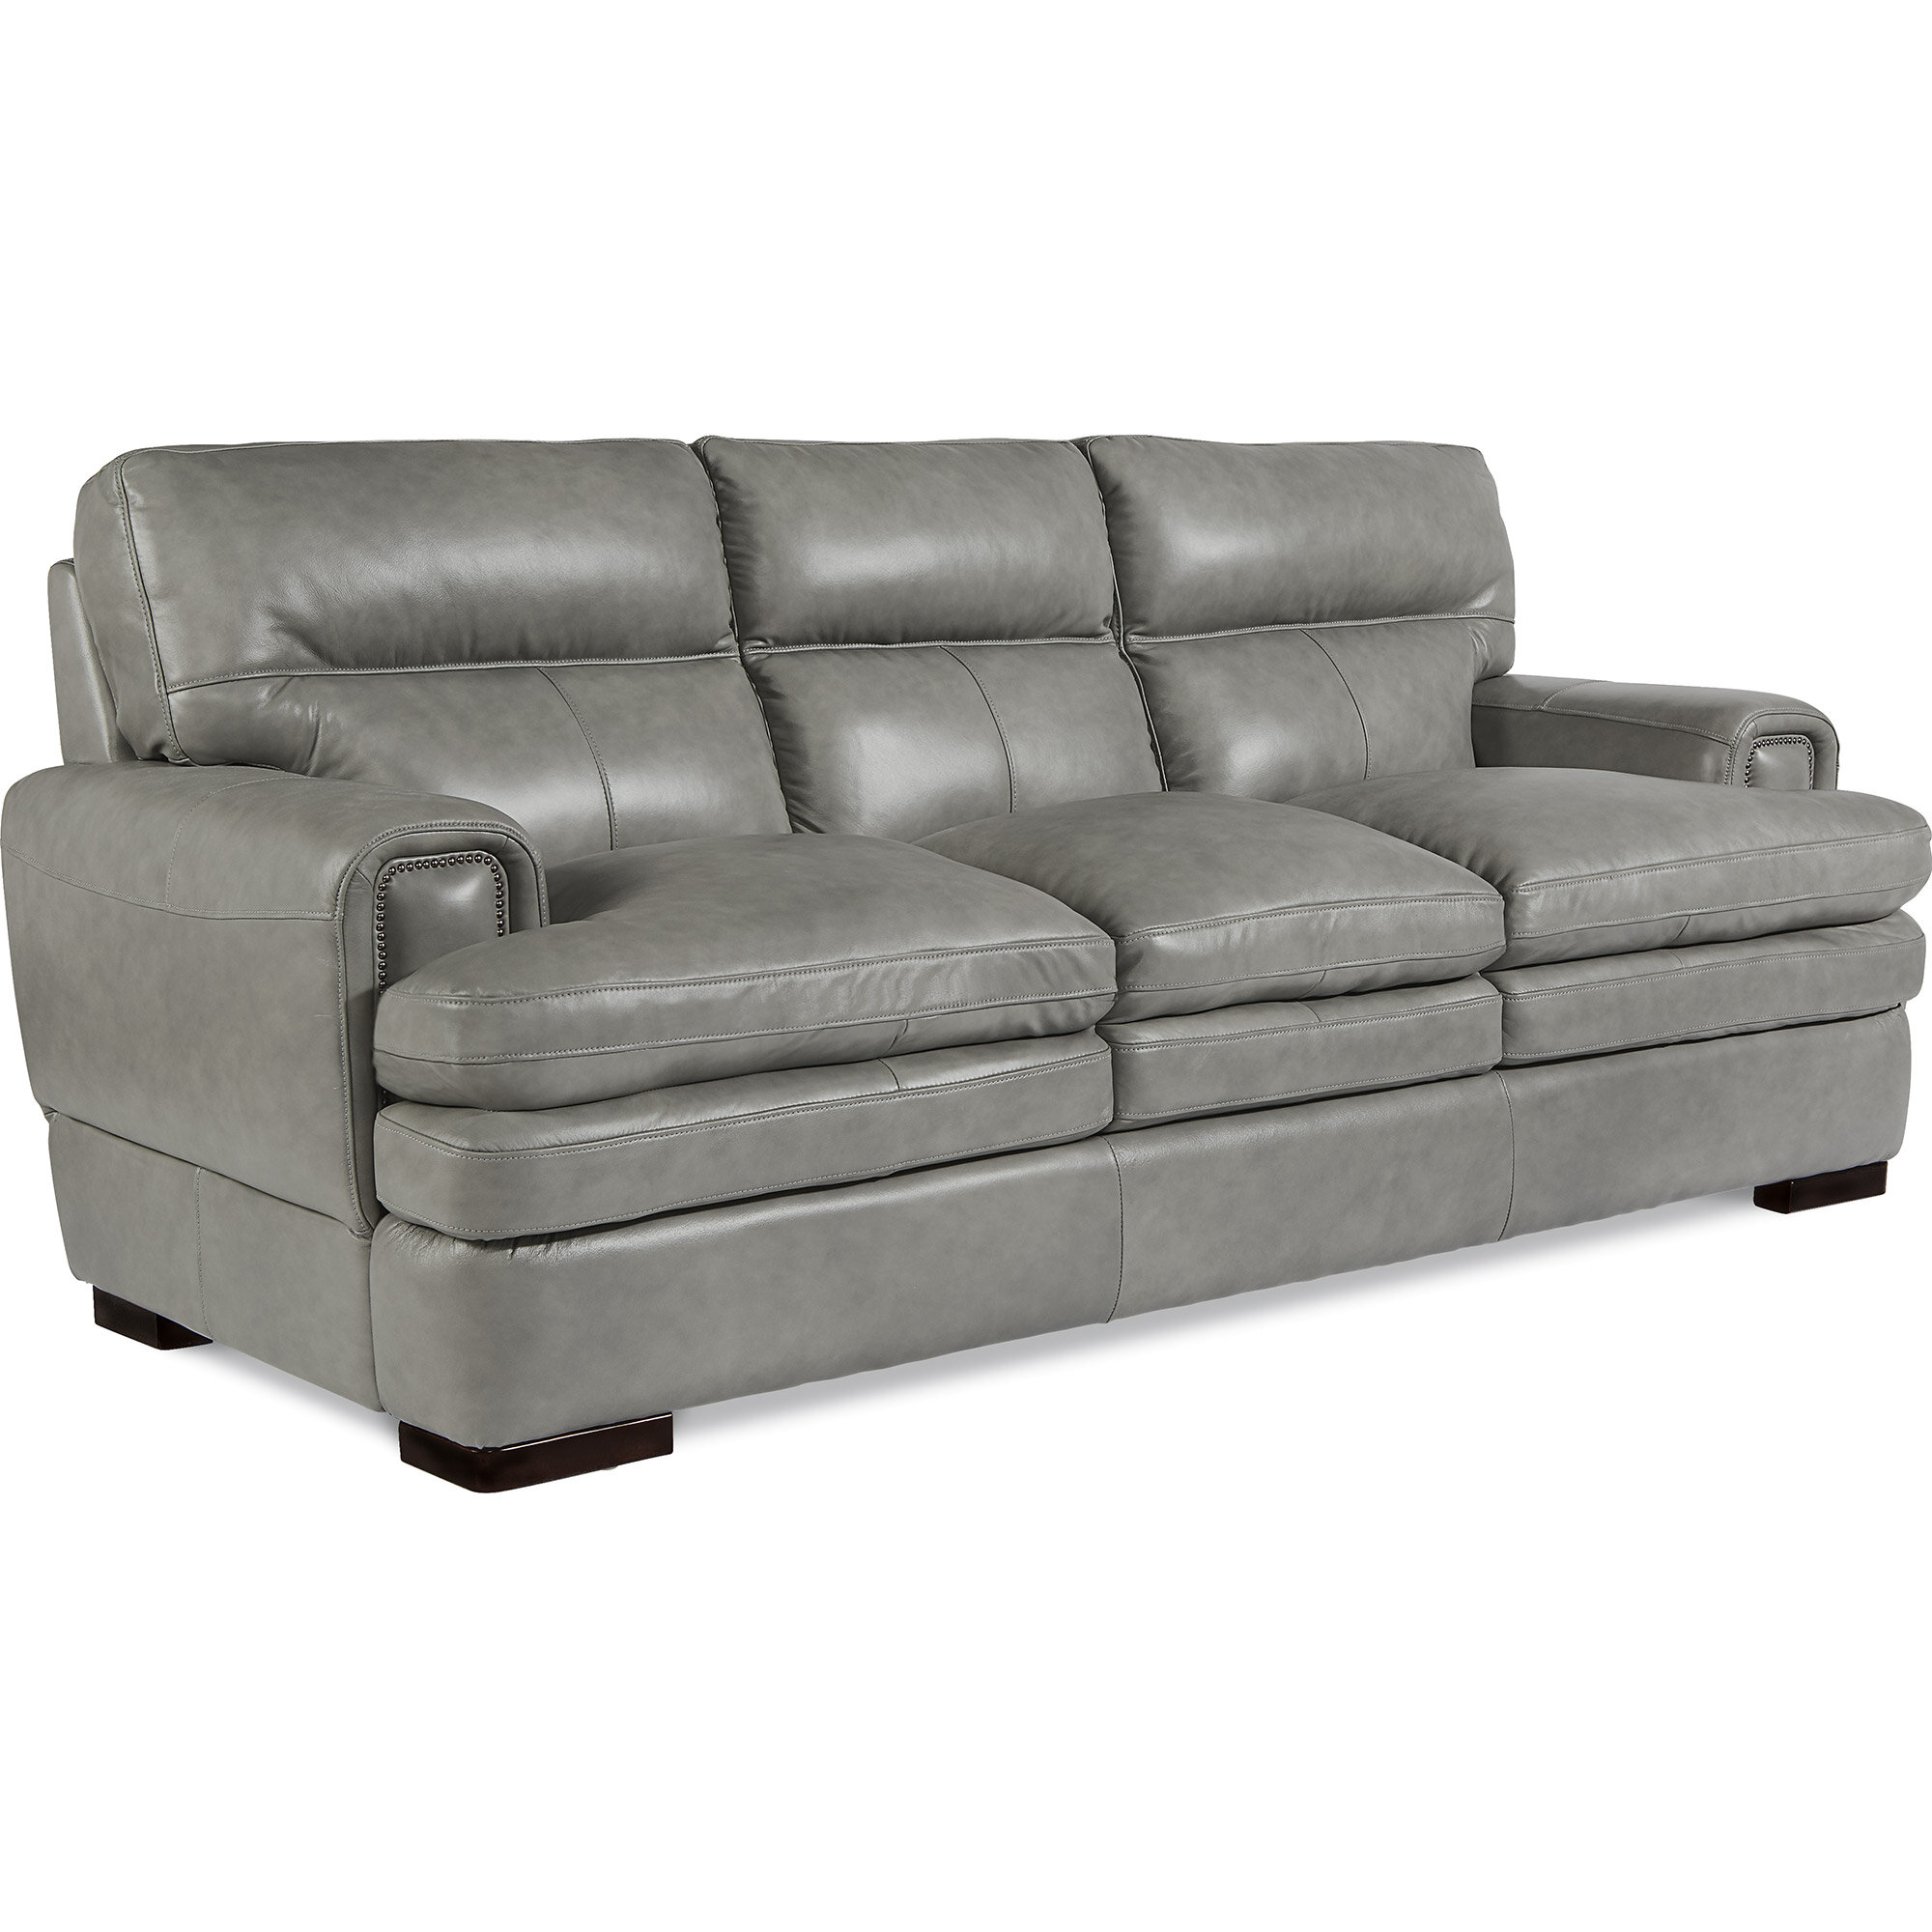 La Z Boy Jake Leather Sofa & Reviews